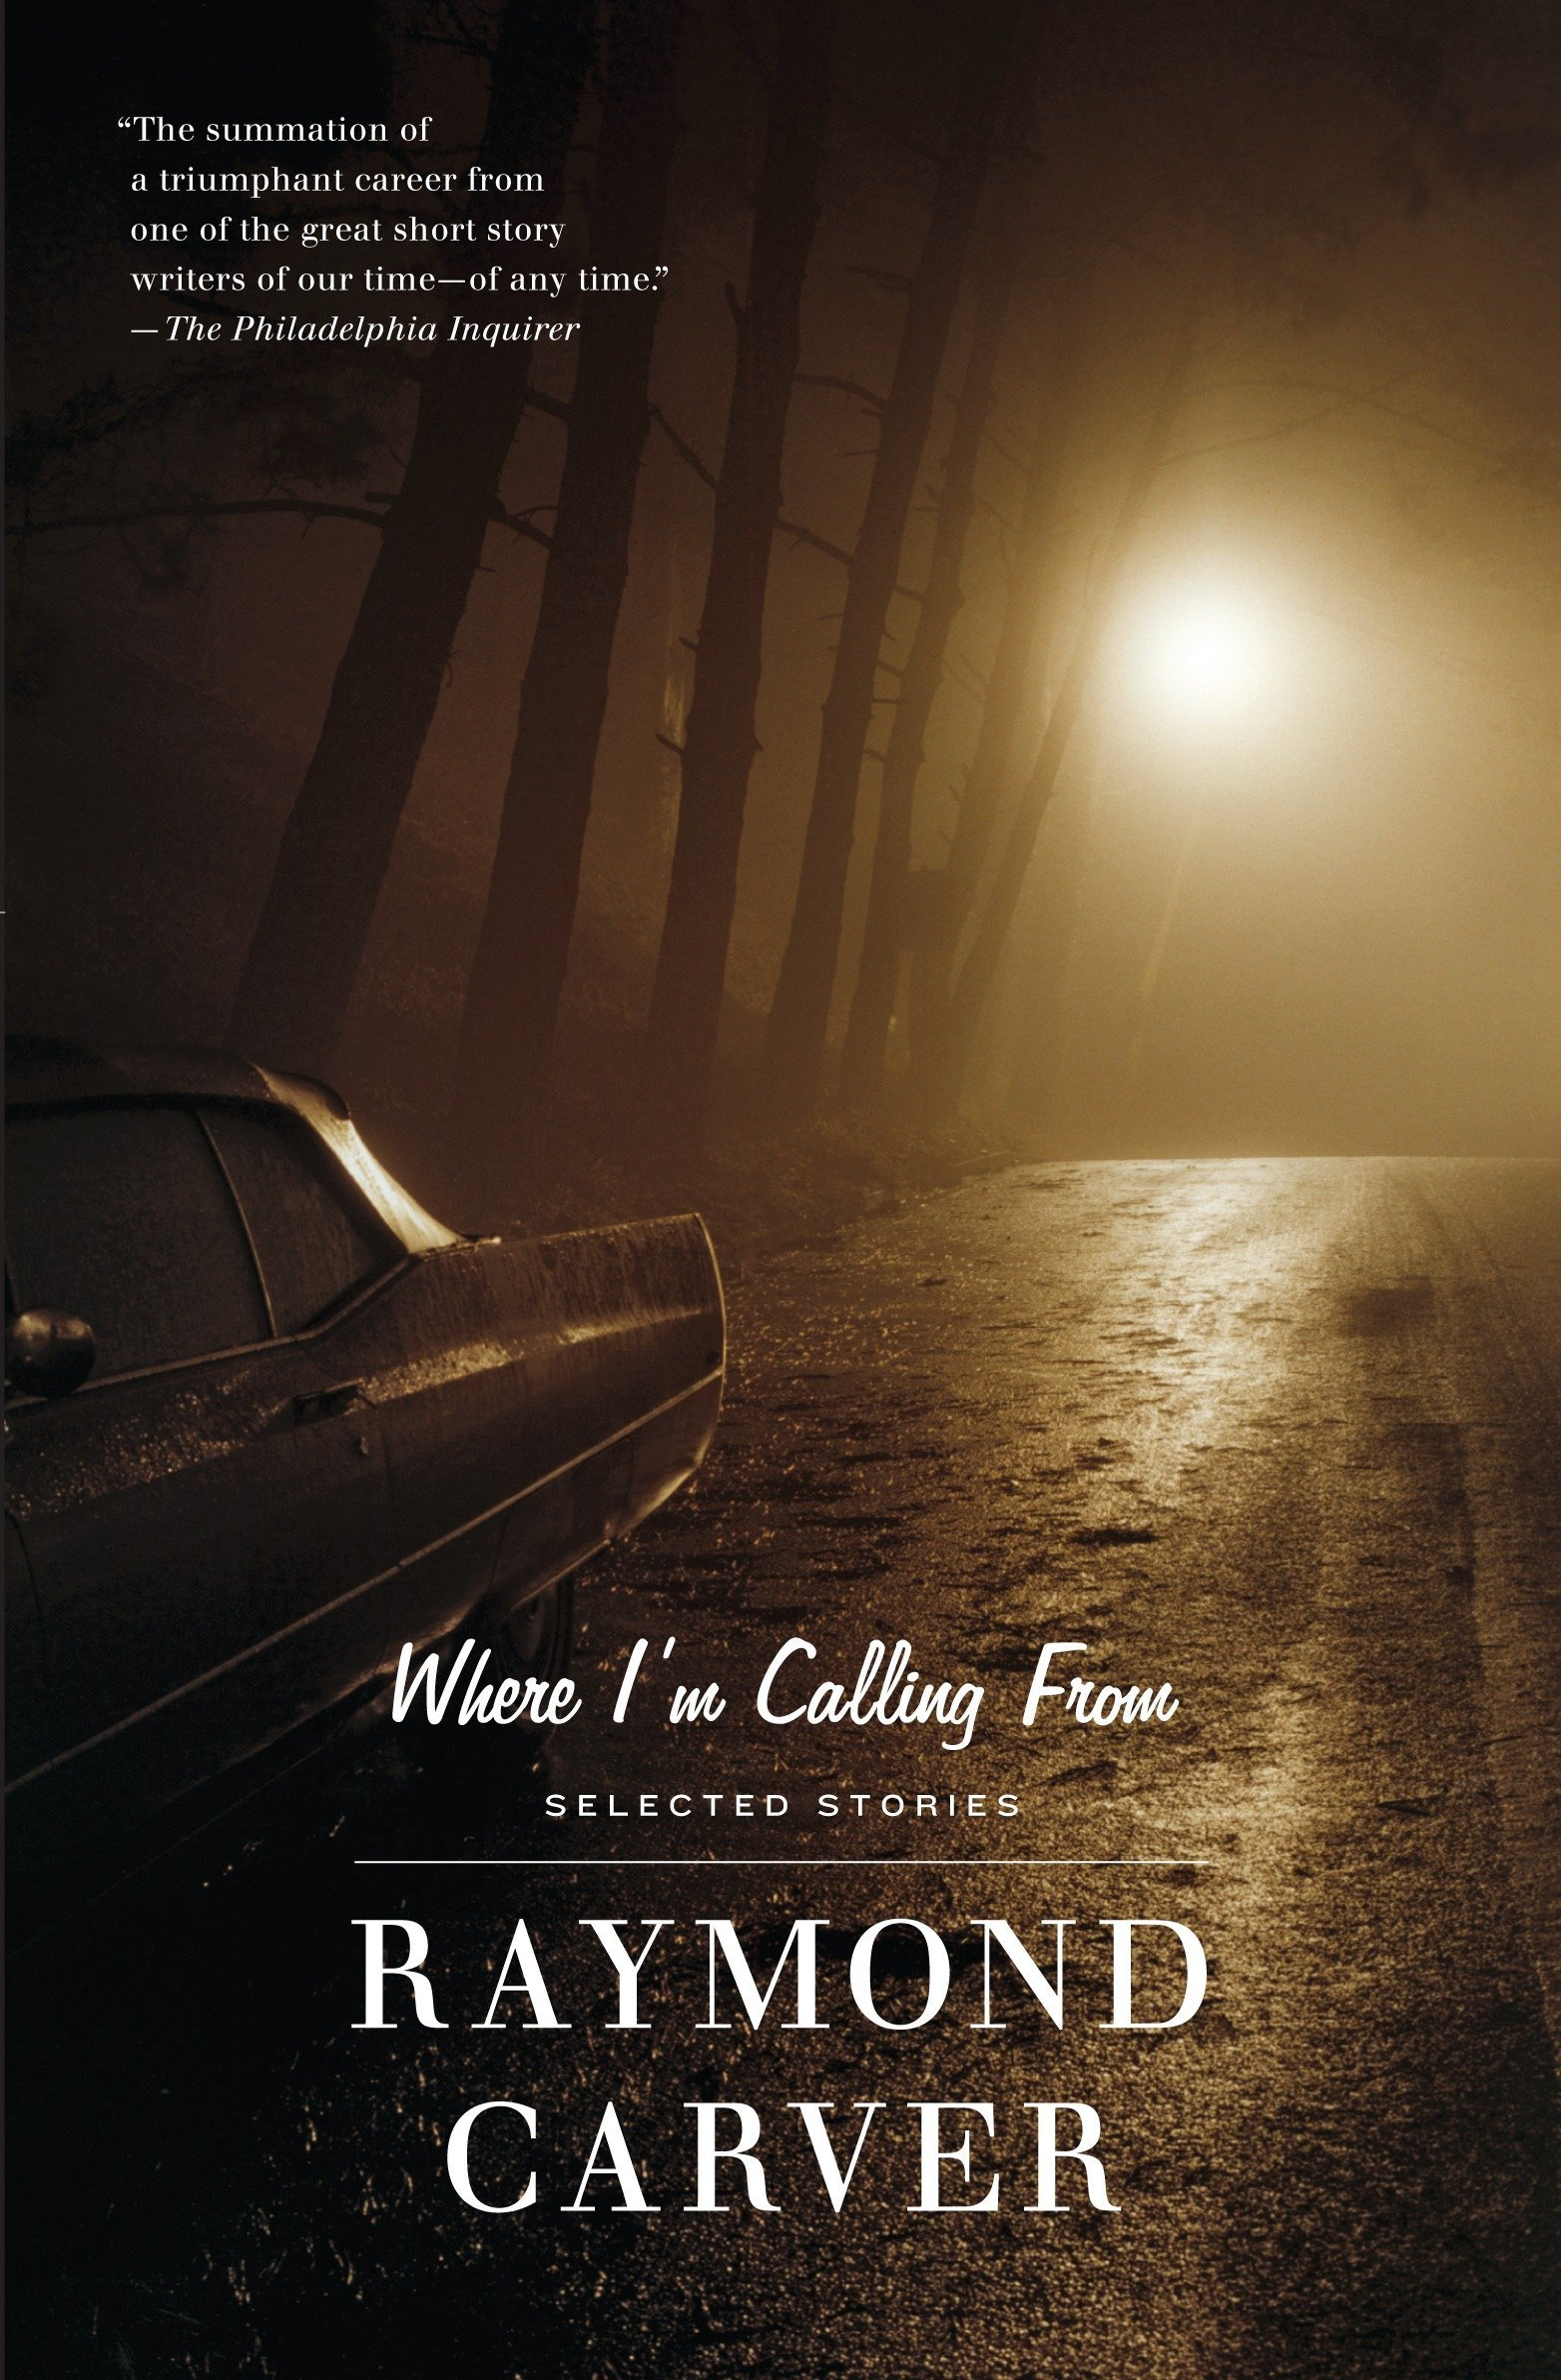 bf827be97aec Where I'm Calling From: Selected Stories: Raymond Carver ...